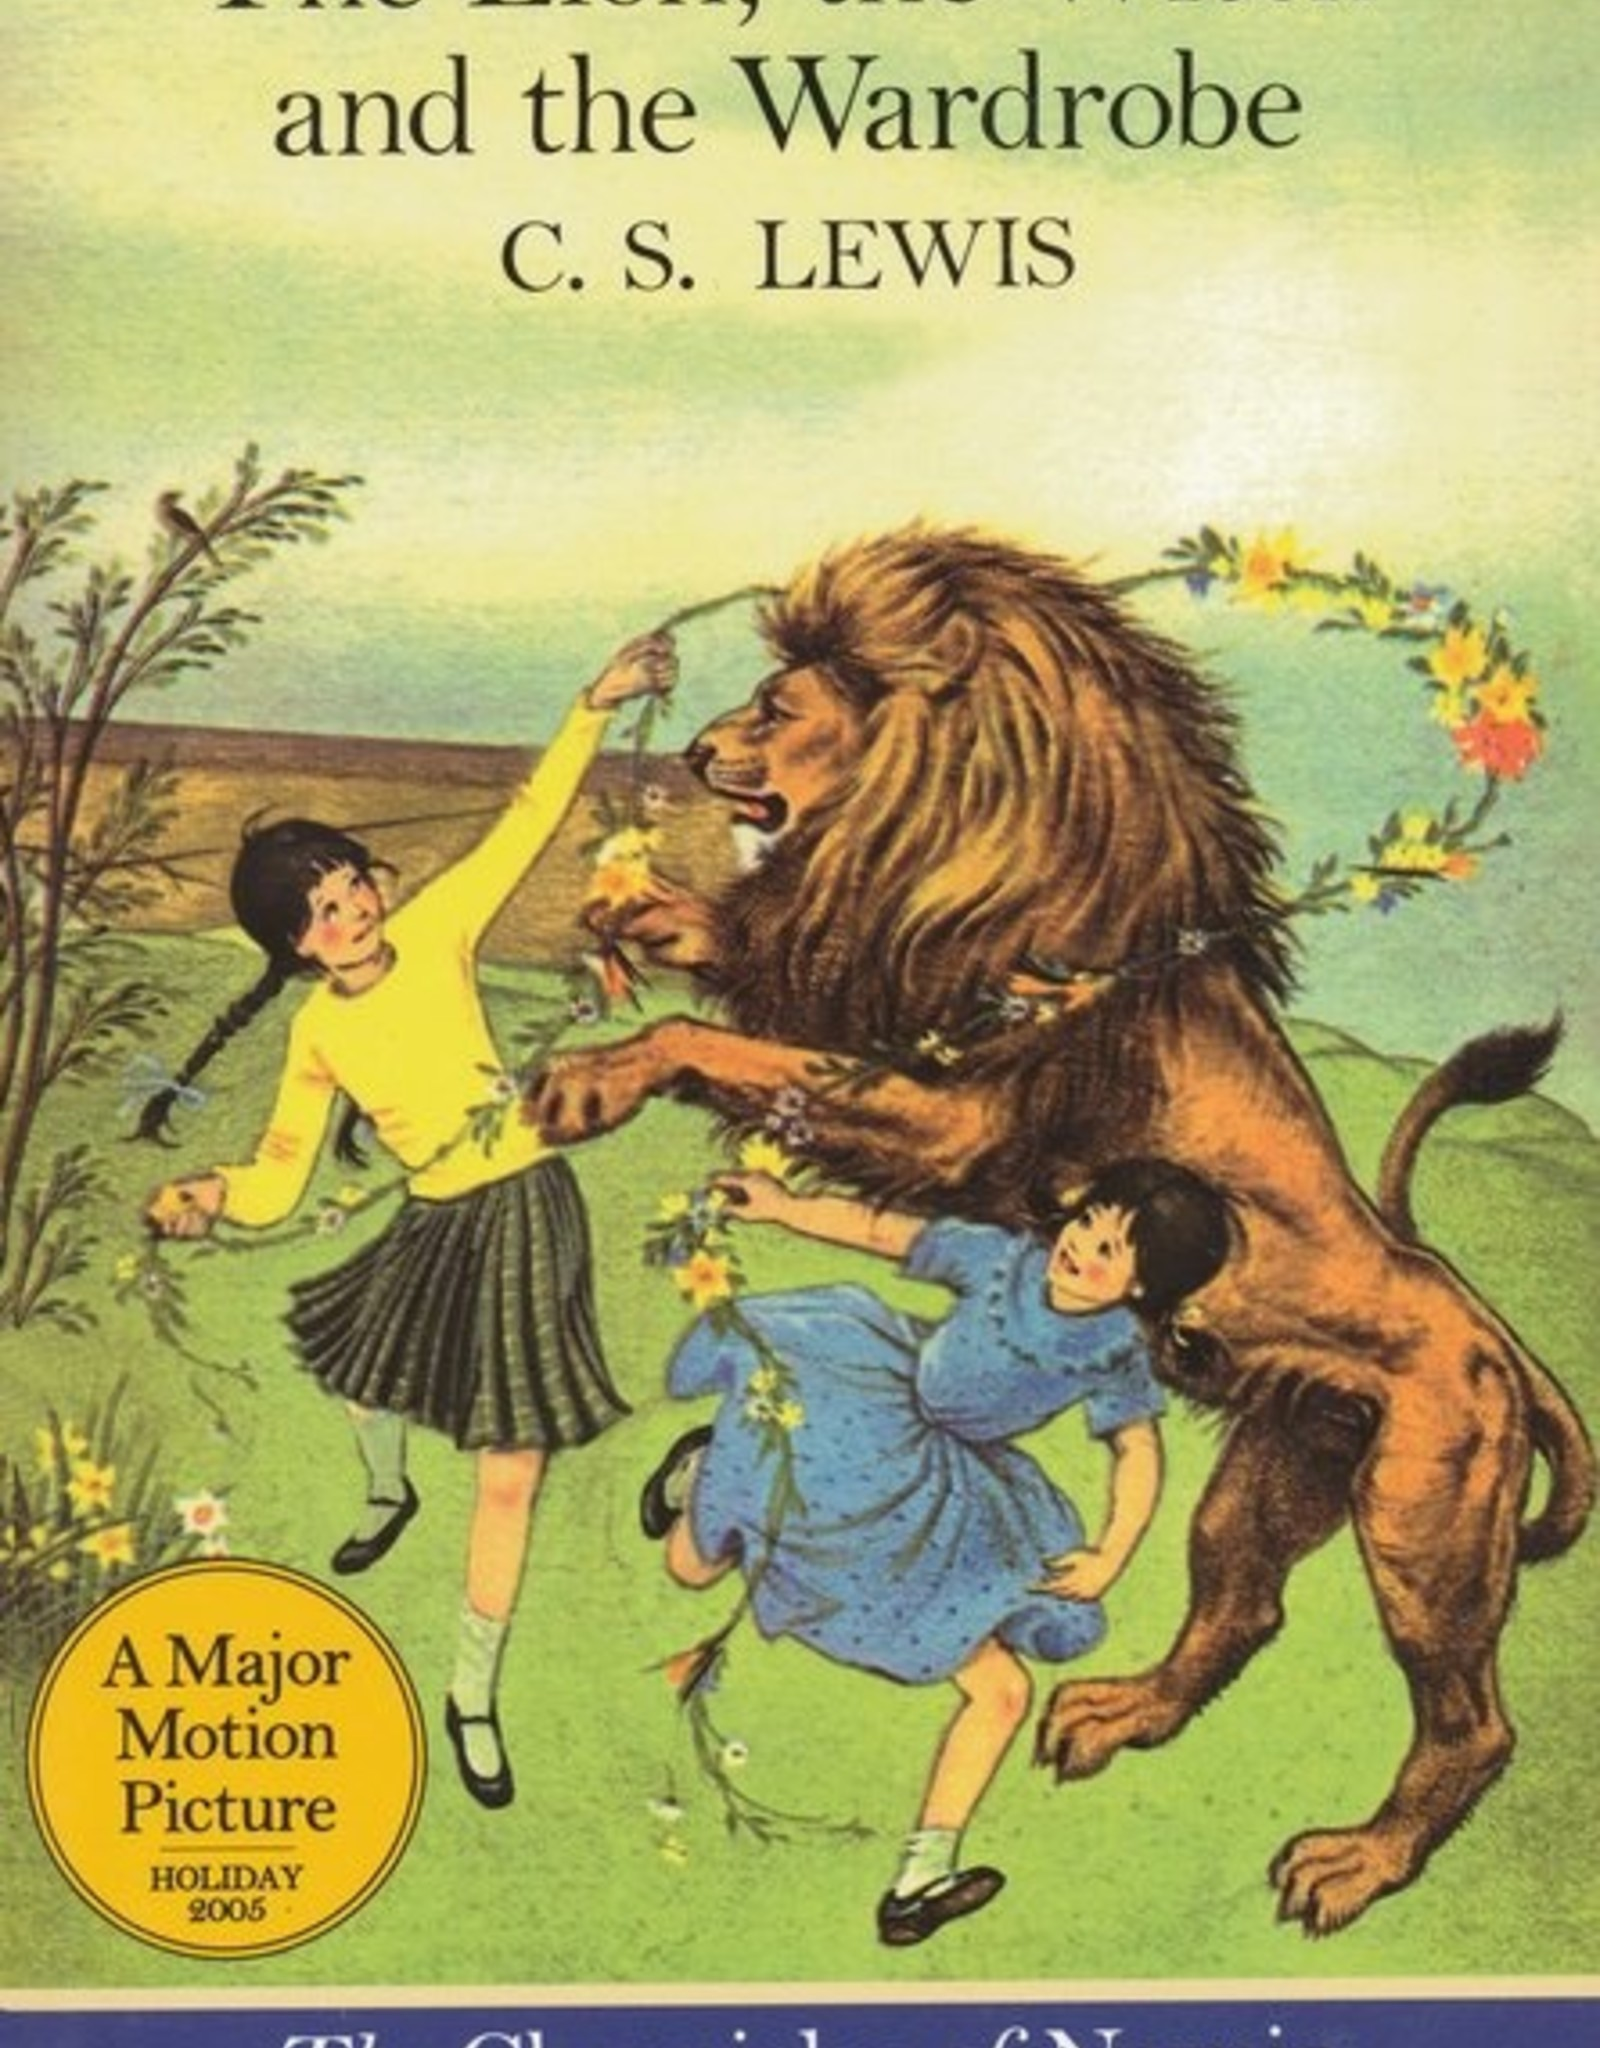 Chronicles of Narnia #02, The Lion, the Witch and the Wardrobe - Paperback